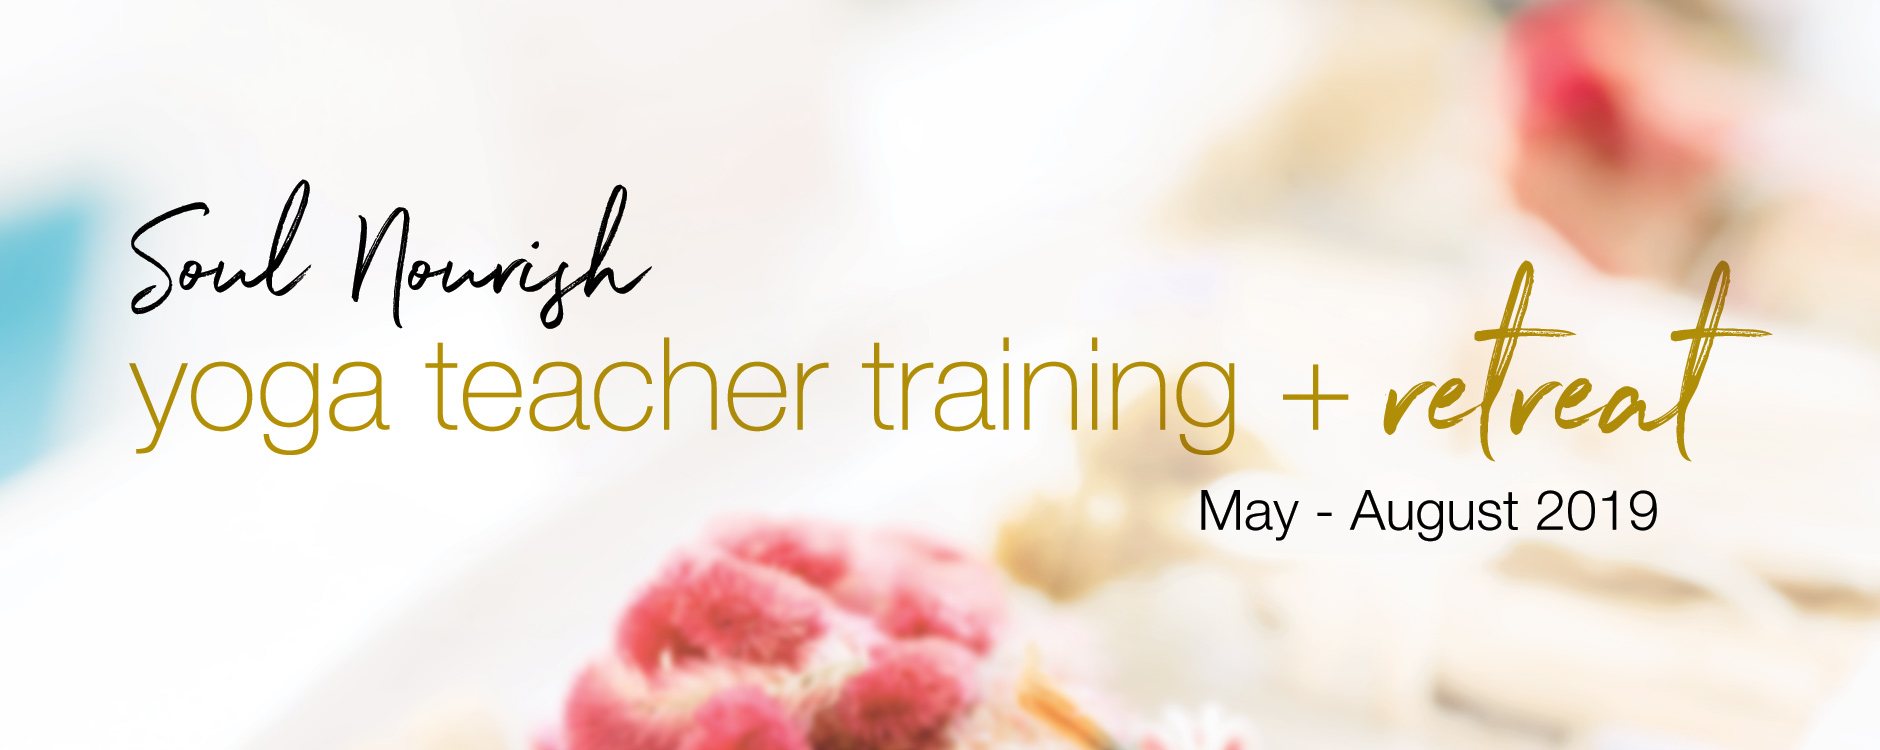 Yoga Teacher Training + Retreat Soul Nourish